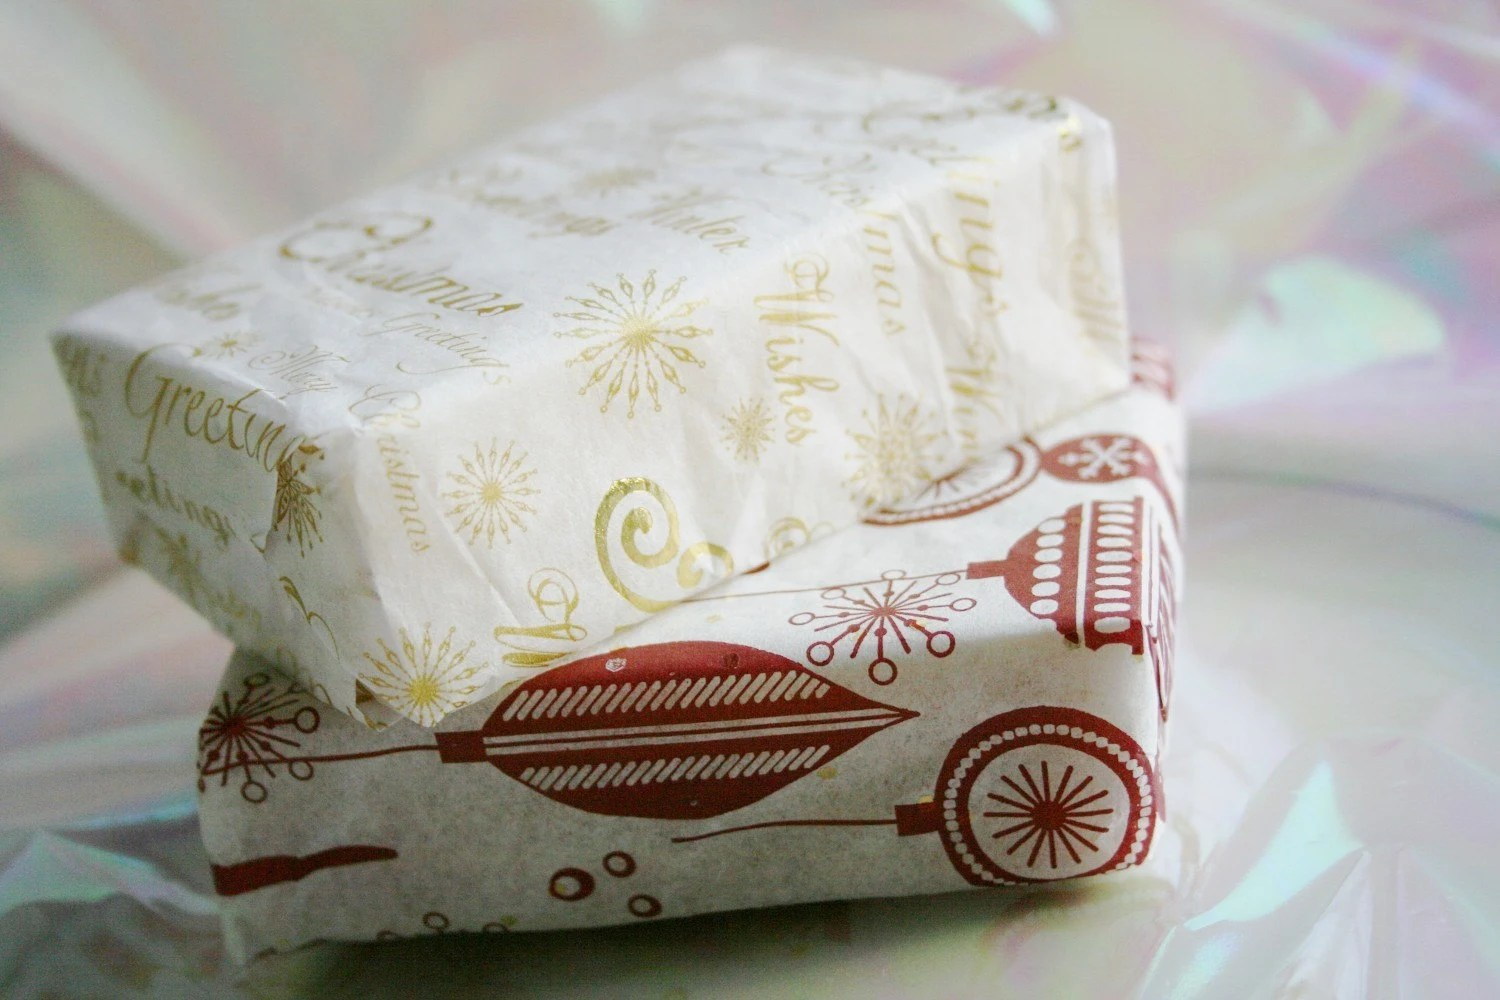 12 Days of Christmas - Unique Holiday Gift - Holiday soap